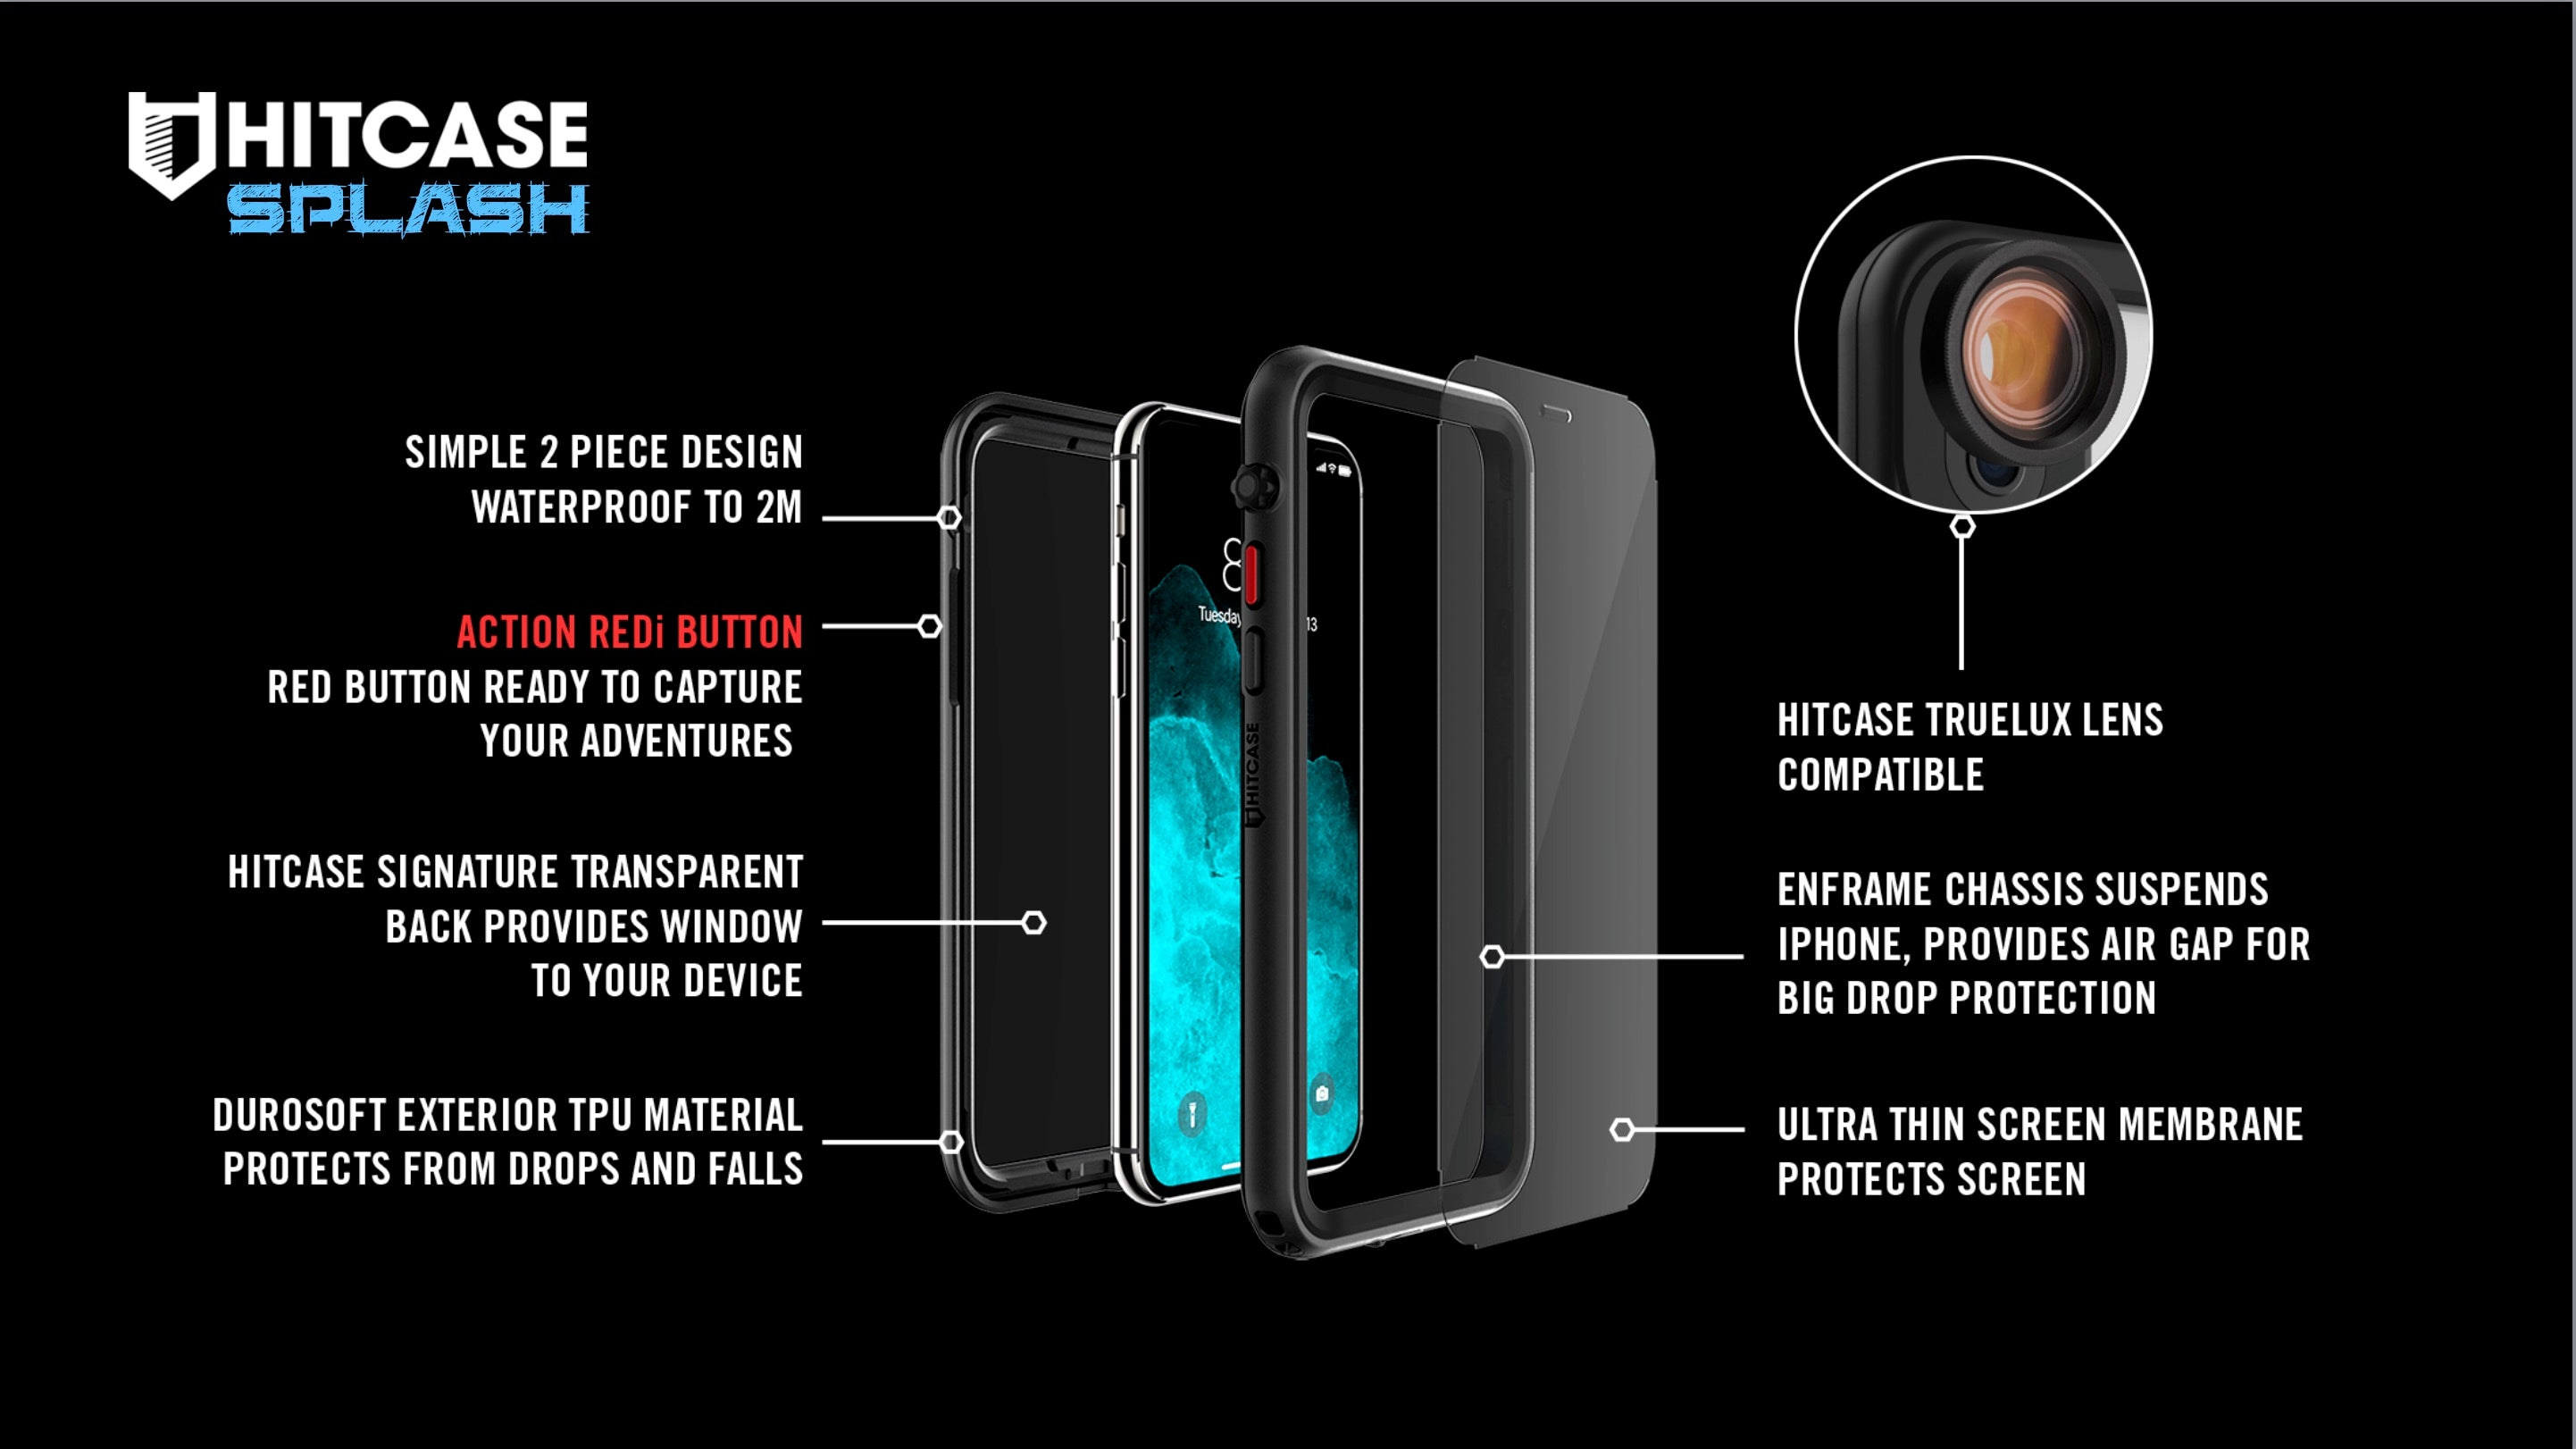 hitcase splash features for iphone